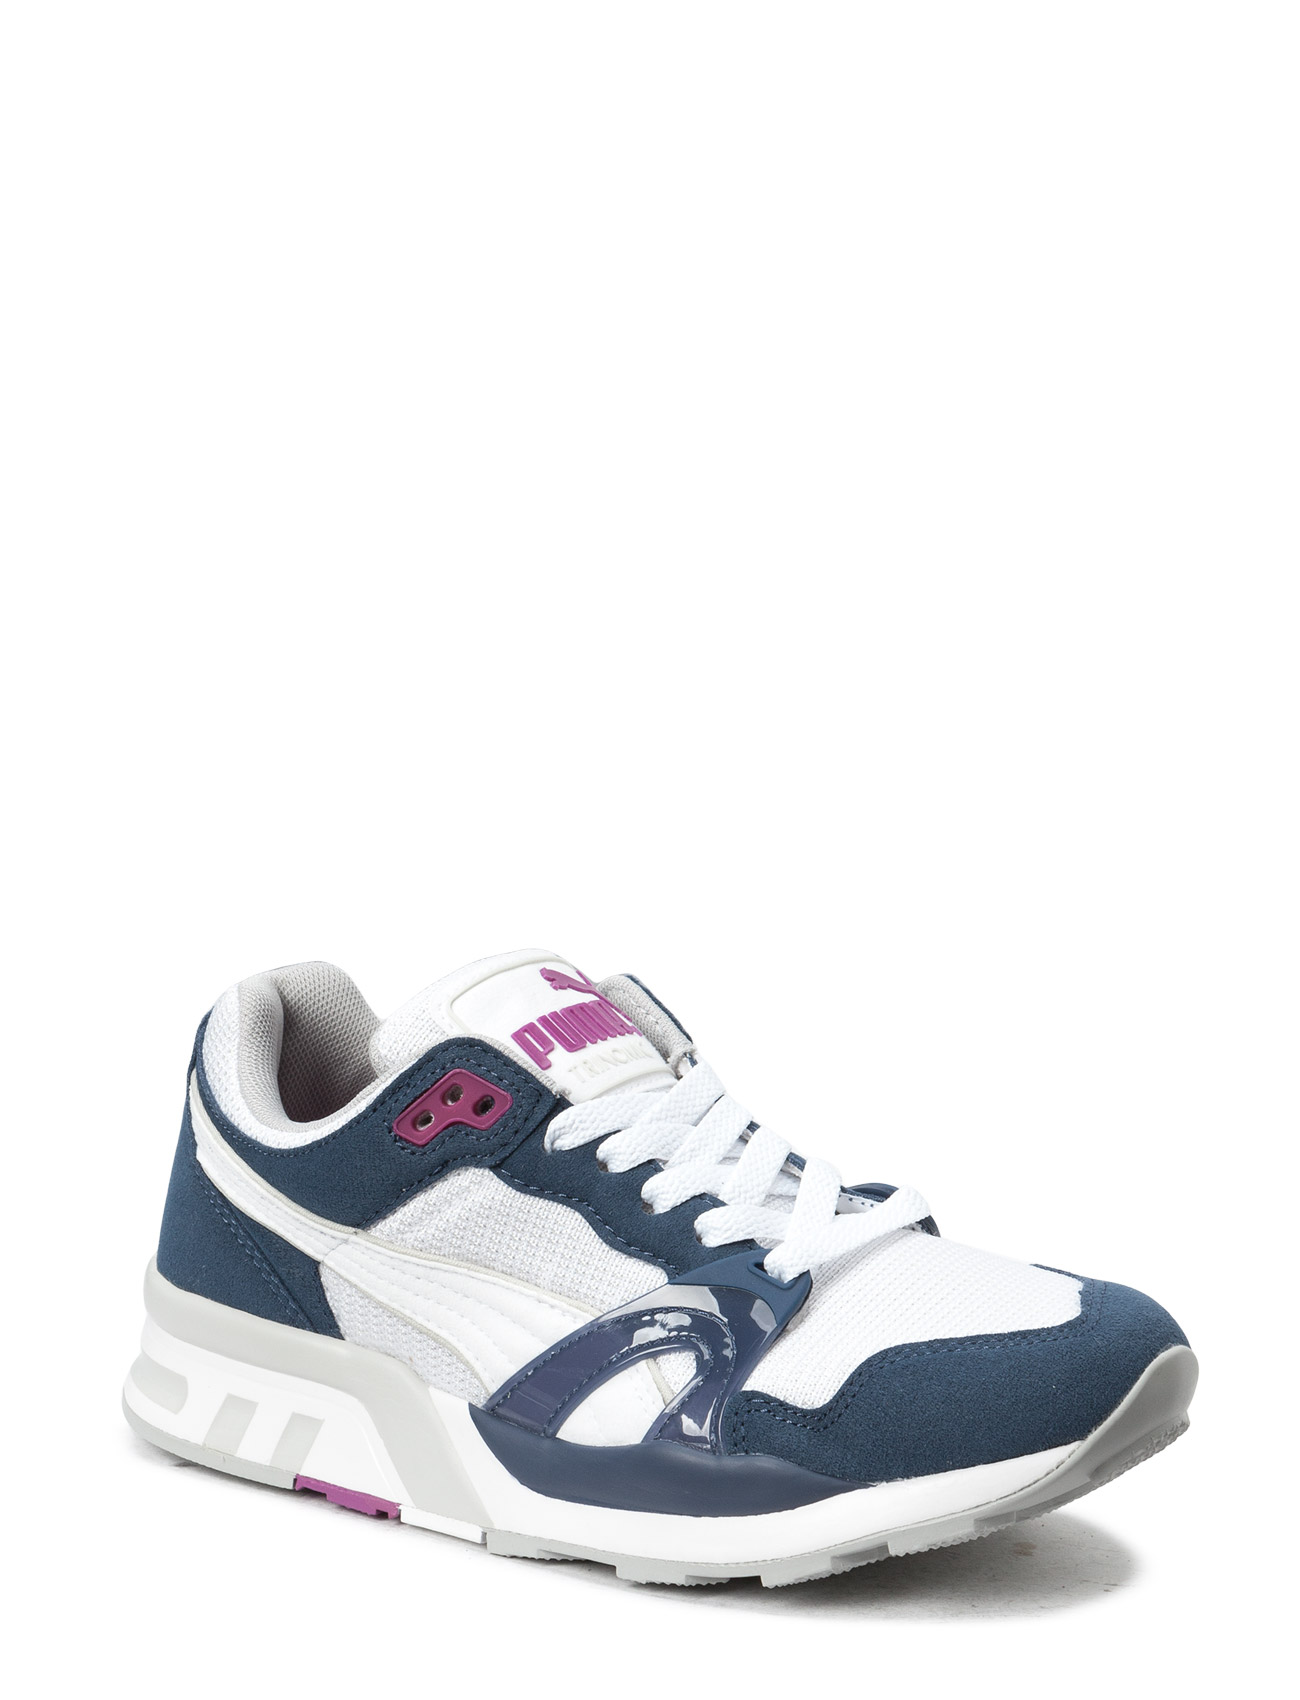 Puma Trinomic Xt-1+ Wn'S Puma Sneakers til Damer i Sort